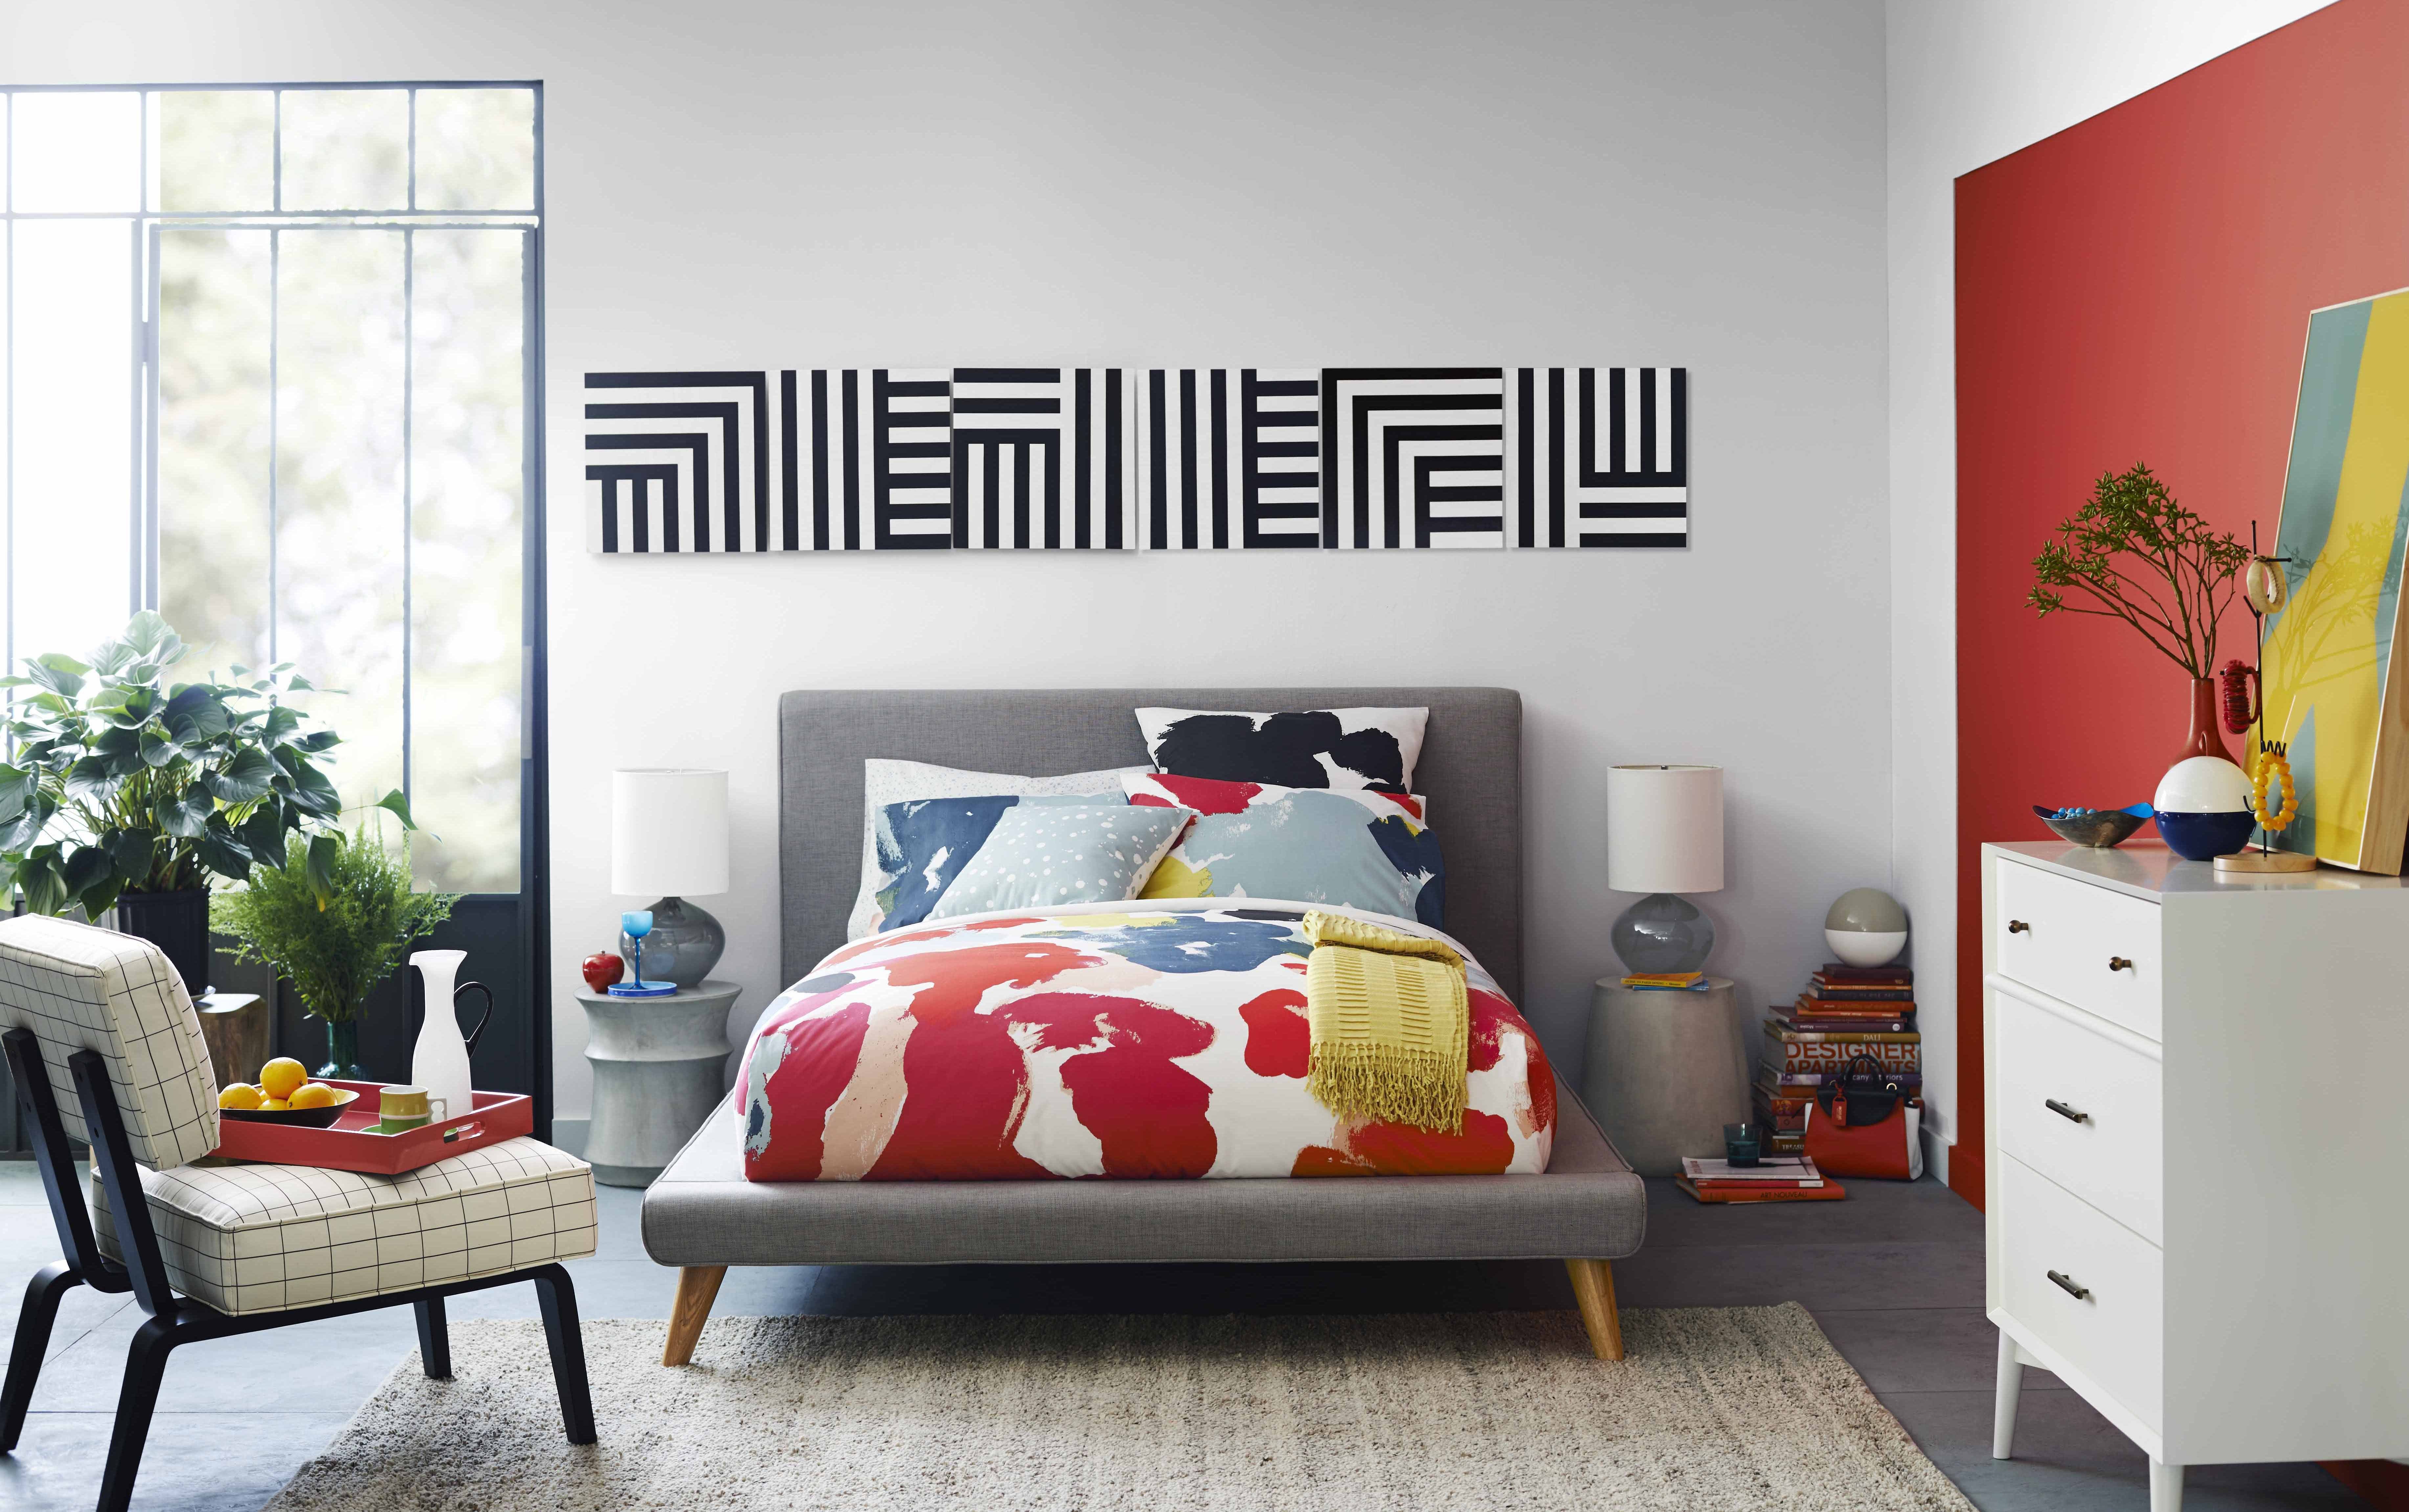 KATE SPADE SATURDAY U0026 WEST ELM TO LAUNCH EXCLUSIVE HOME COLLECTION  AVAILABLE AT WEST ELM | Business Wire